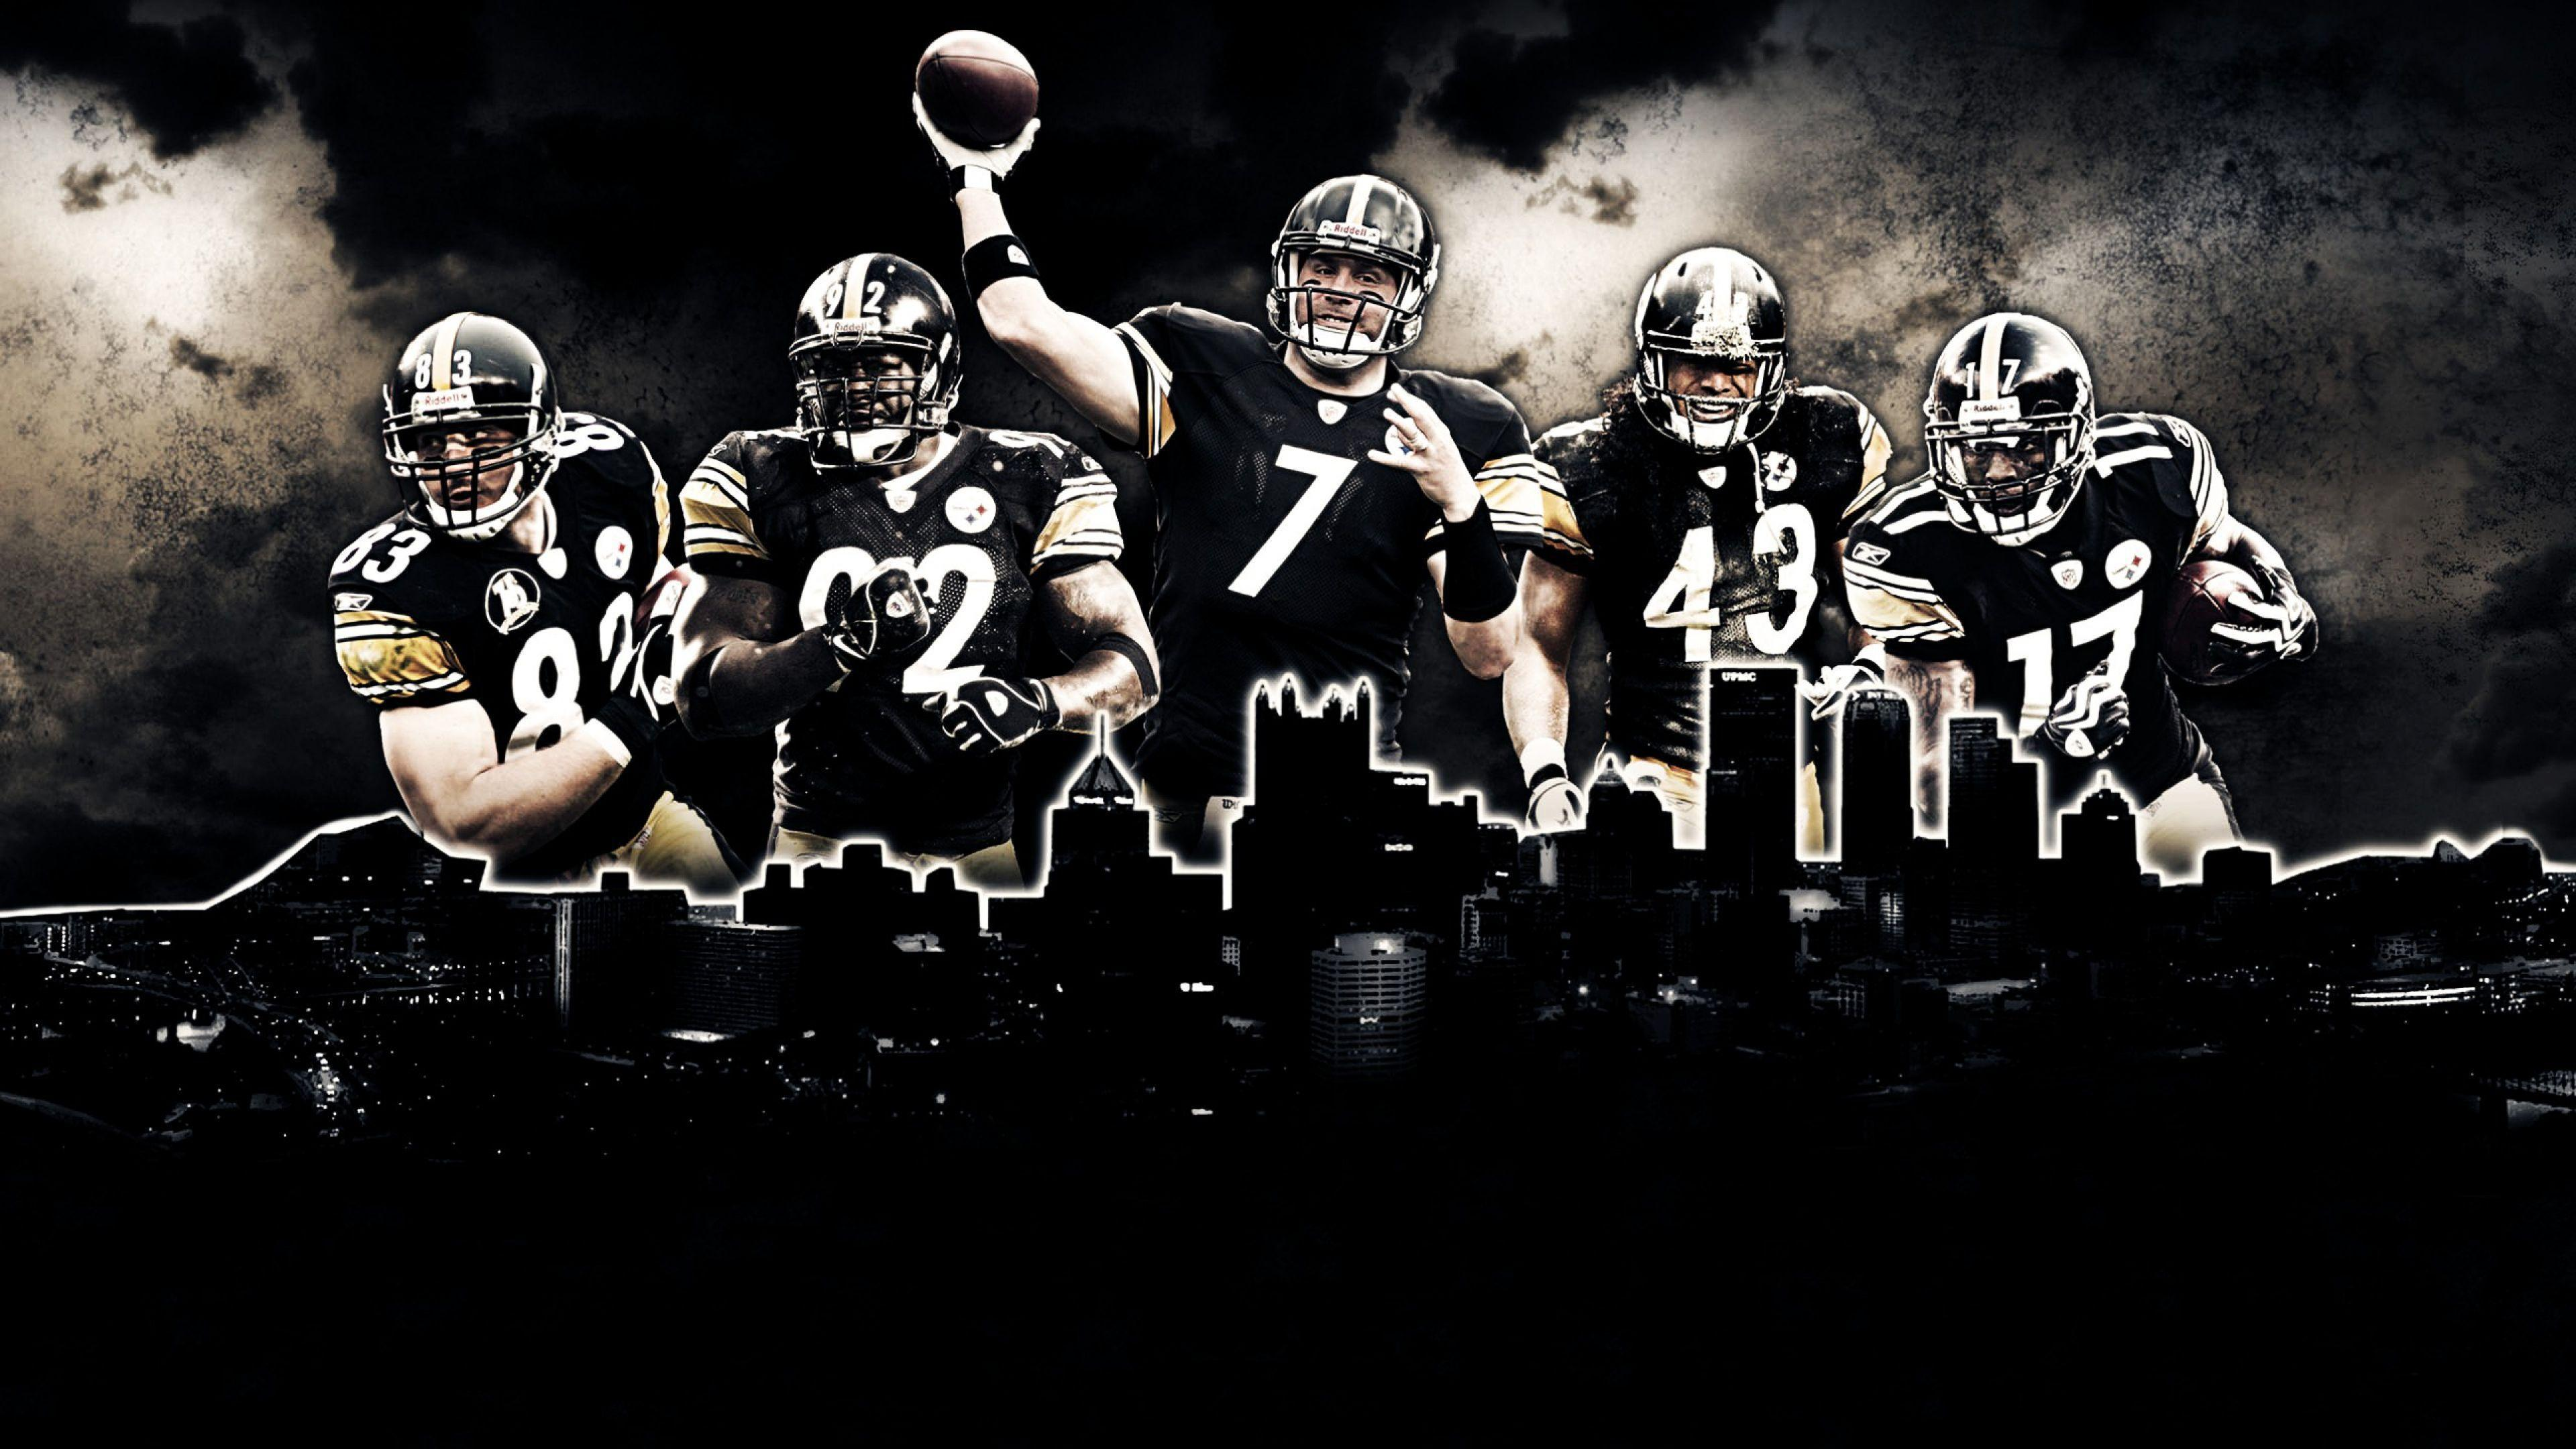 all nfl team wallpapers - photo #31